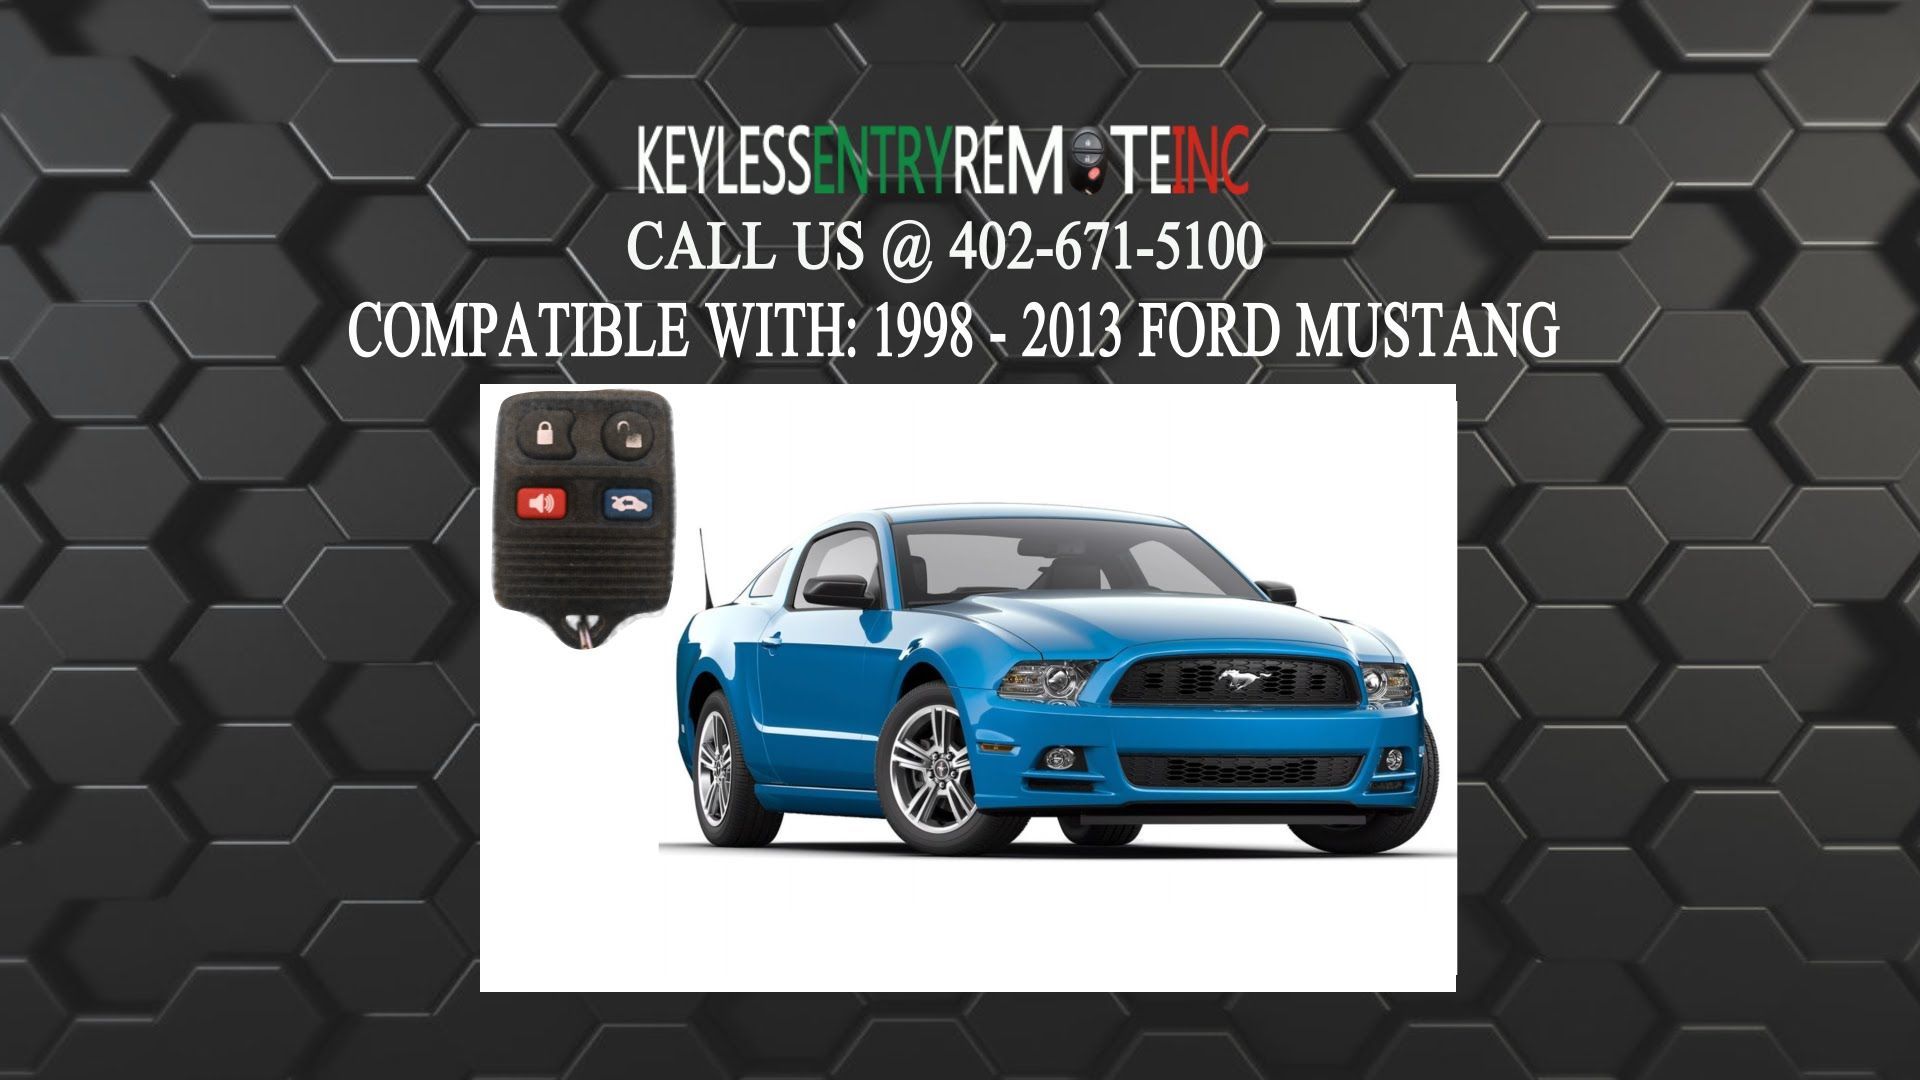 How To Replace A Ford Mustang Key Fob Battery 1998 2012 Ford Mustang Mustang Key Fob